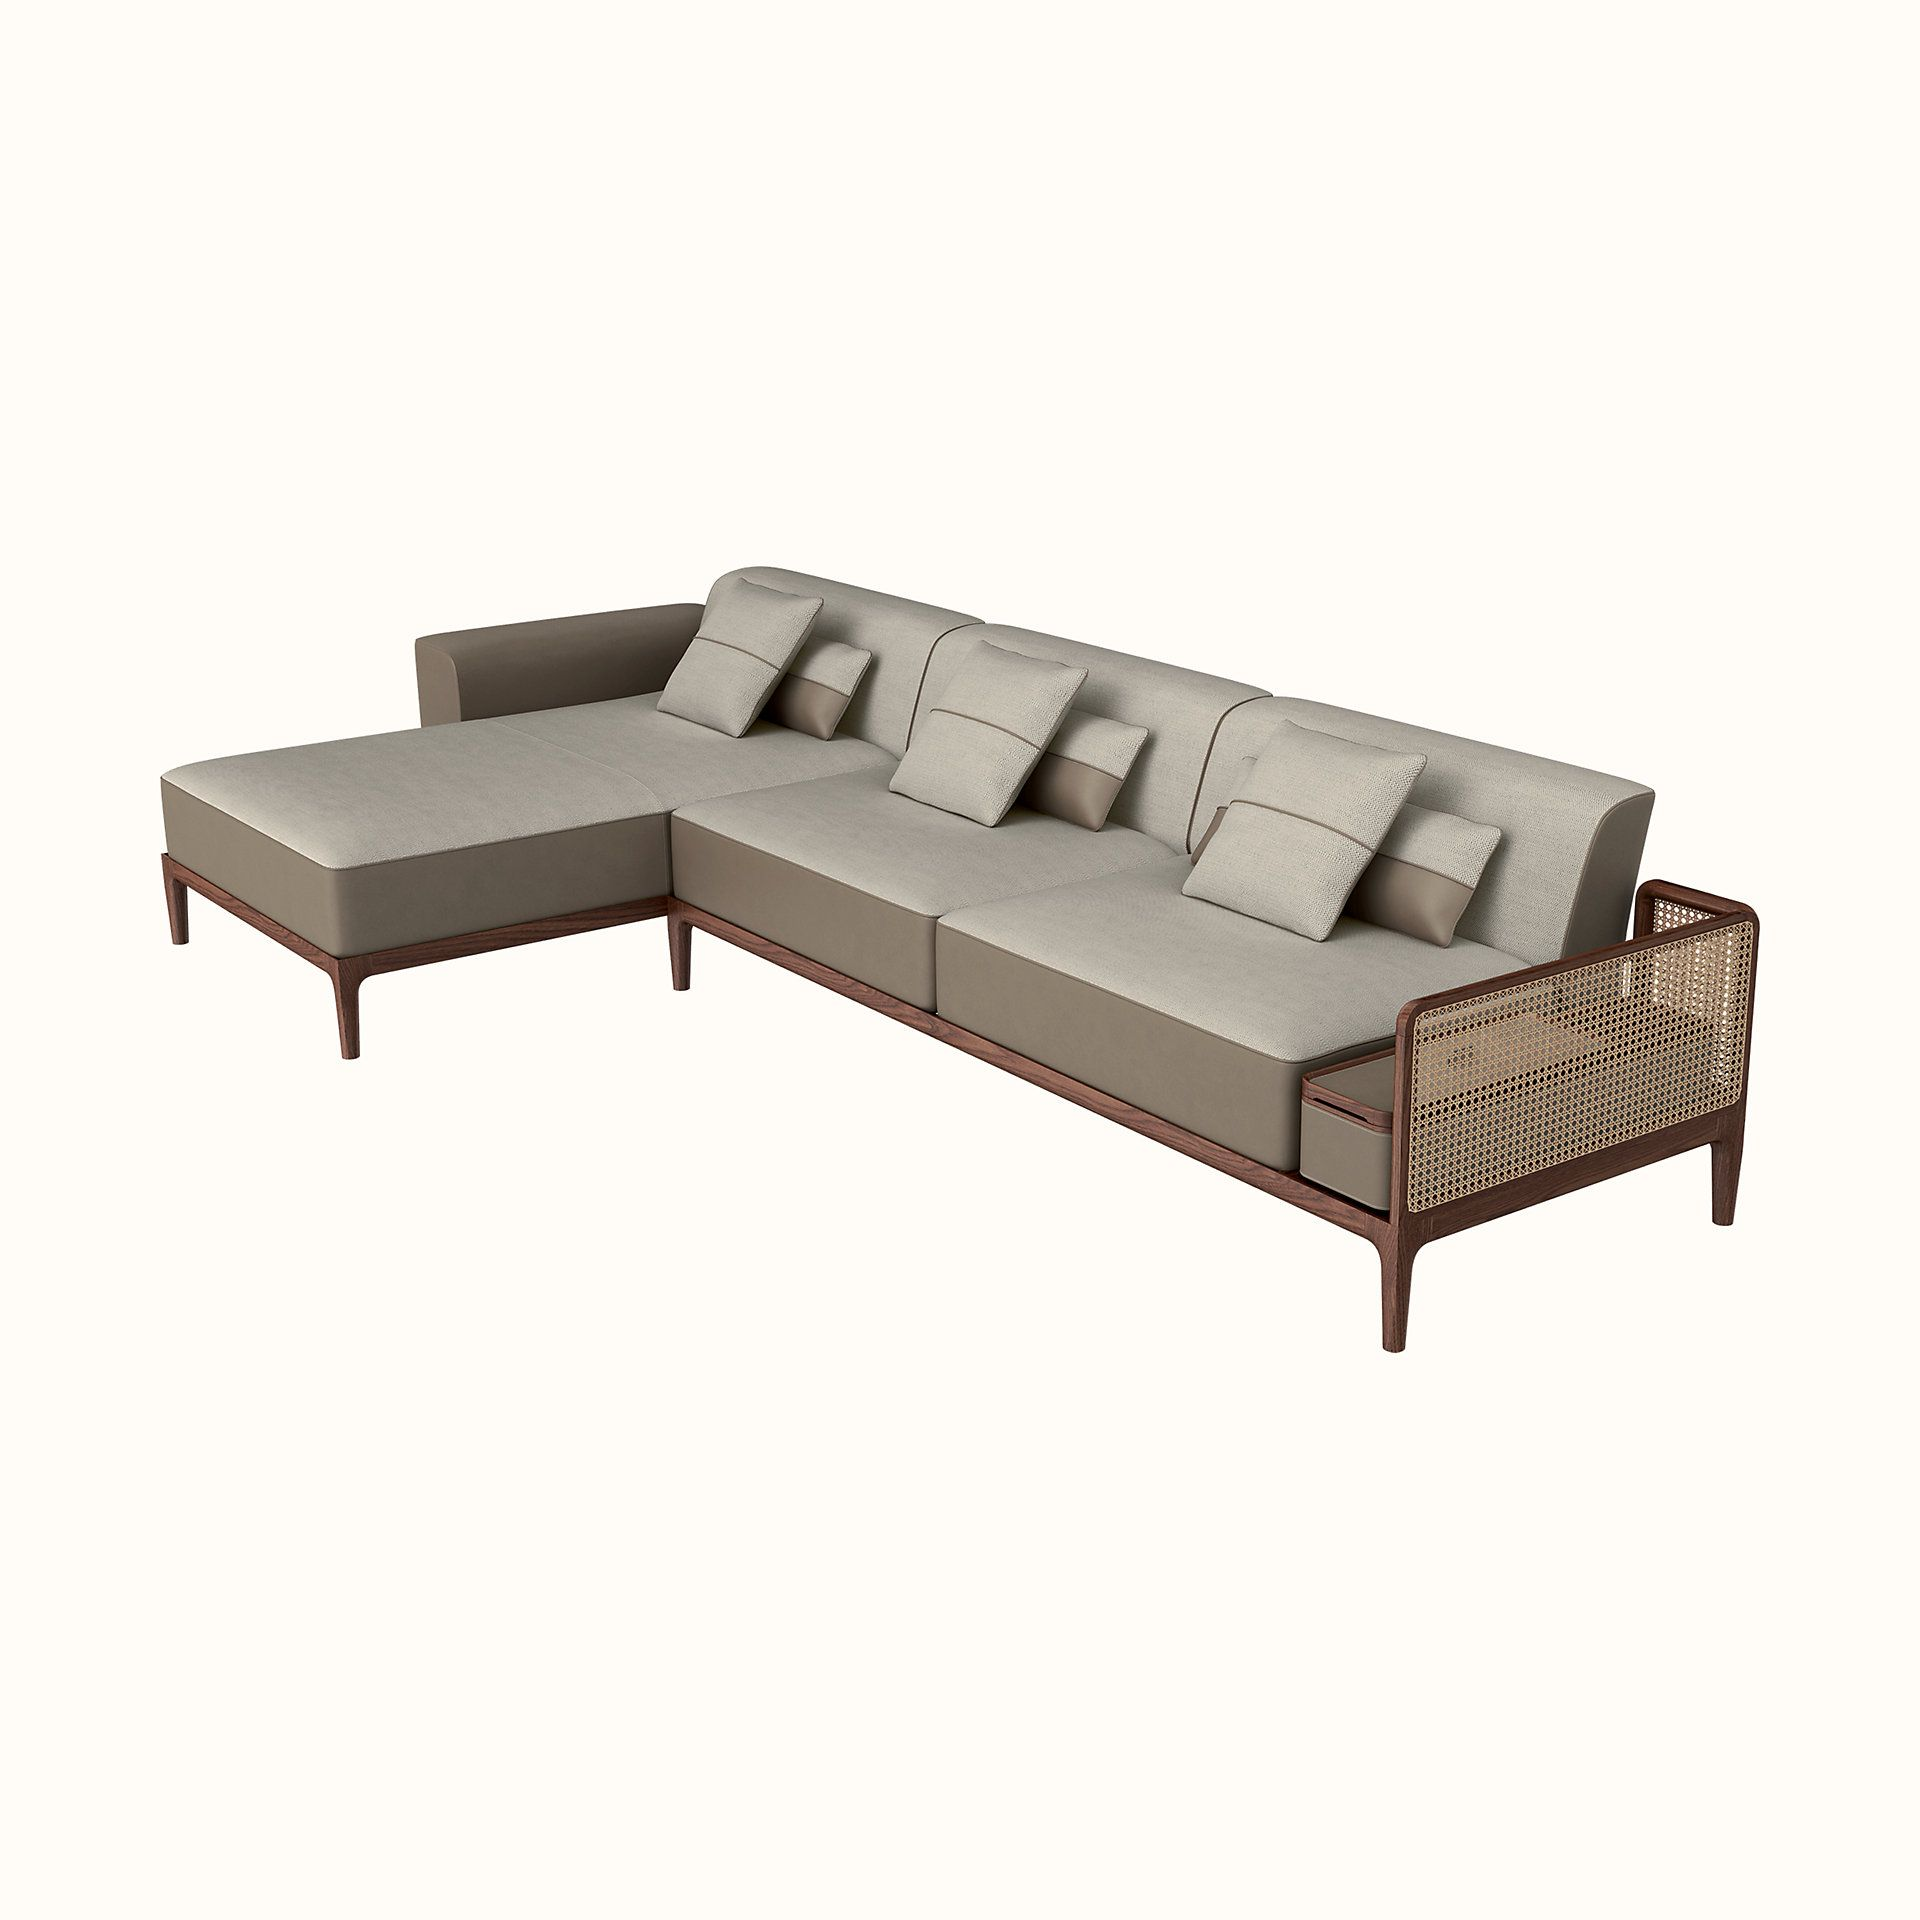 Sofa Sellier 2 Seater With Chaise Lounge Sofa Sofa Furniture Sofa Bed